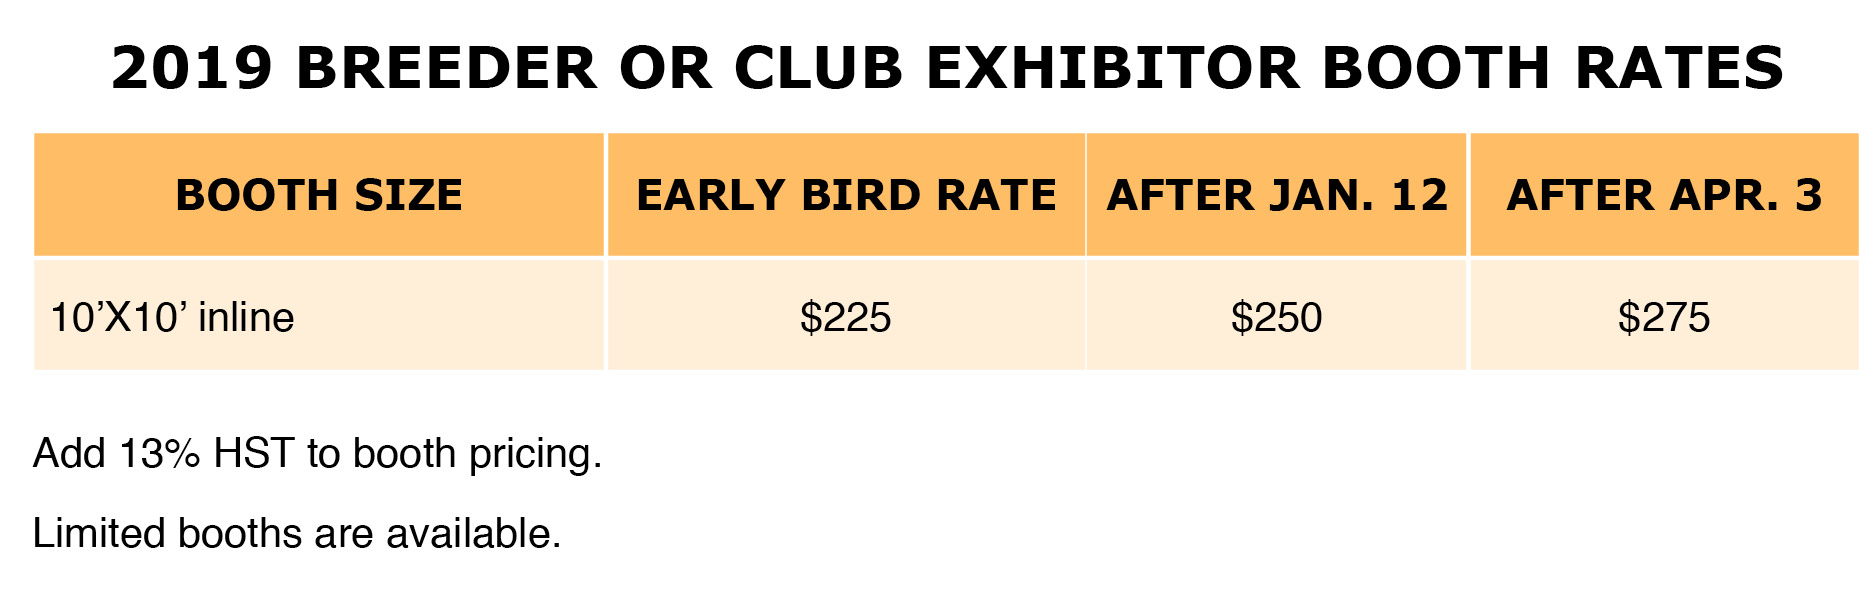 2019 Club or Breeder Booth Rates